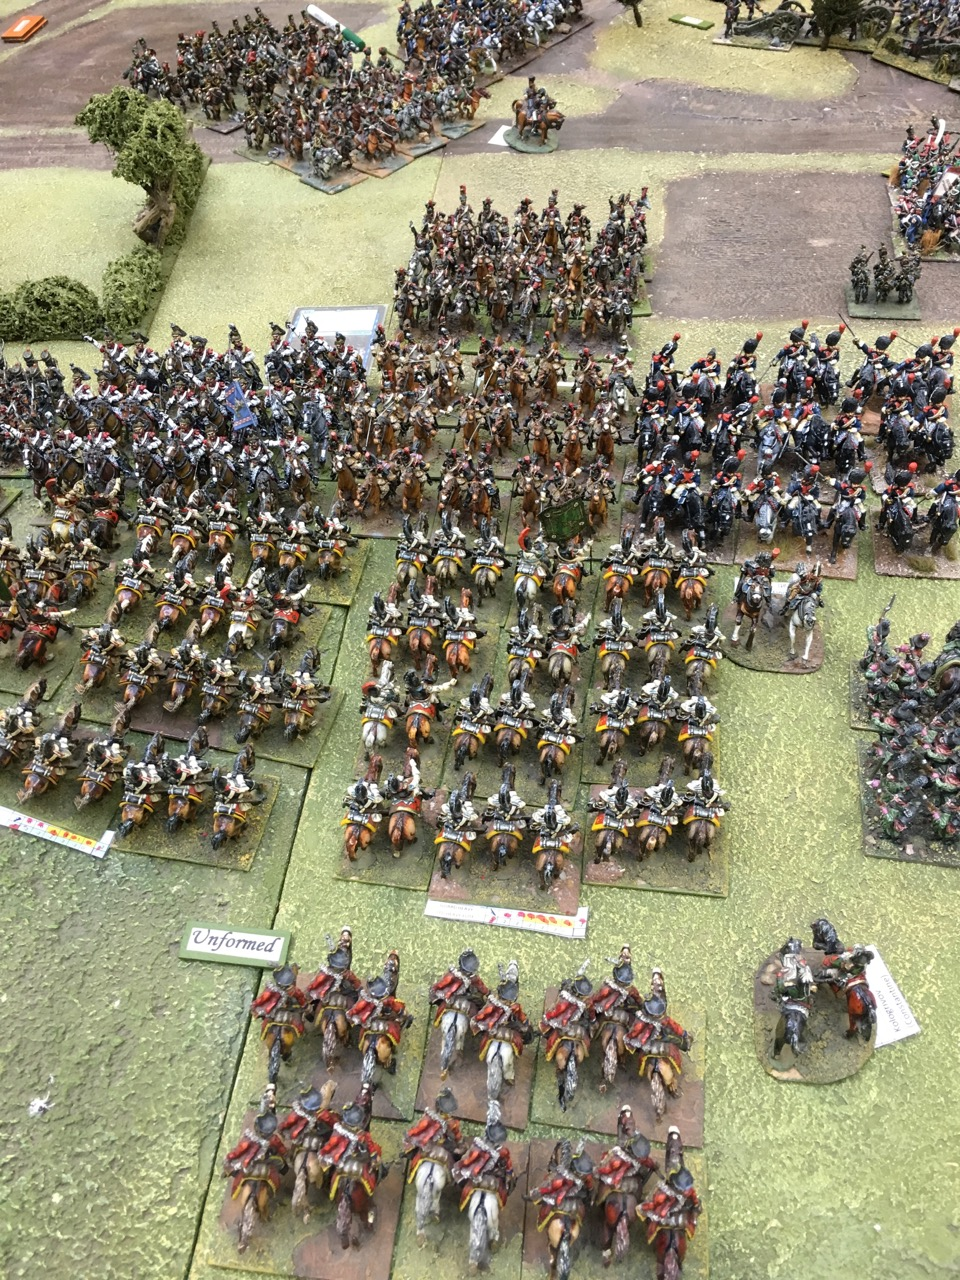 Cuirassier v Cuirassier on the left flank